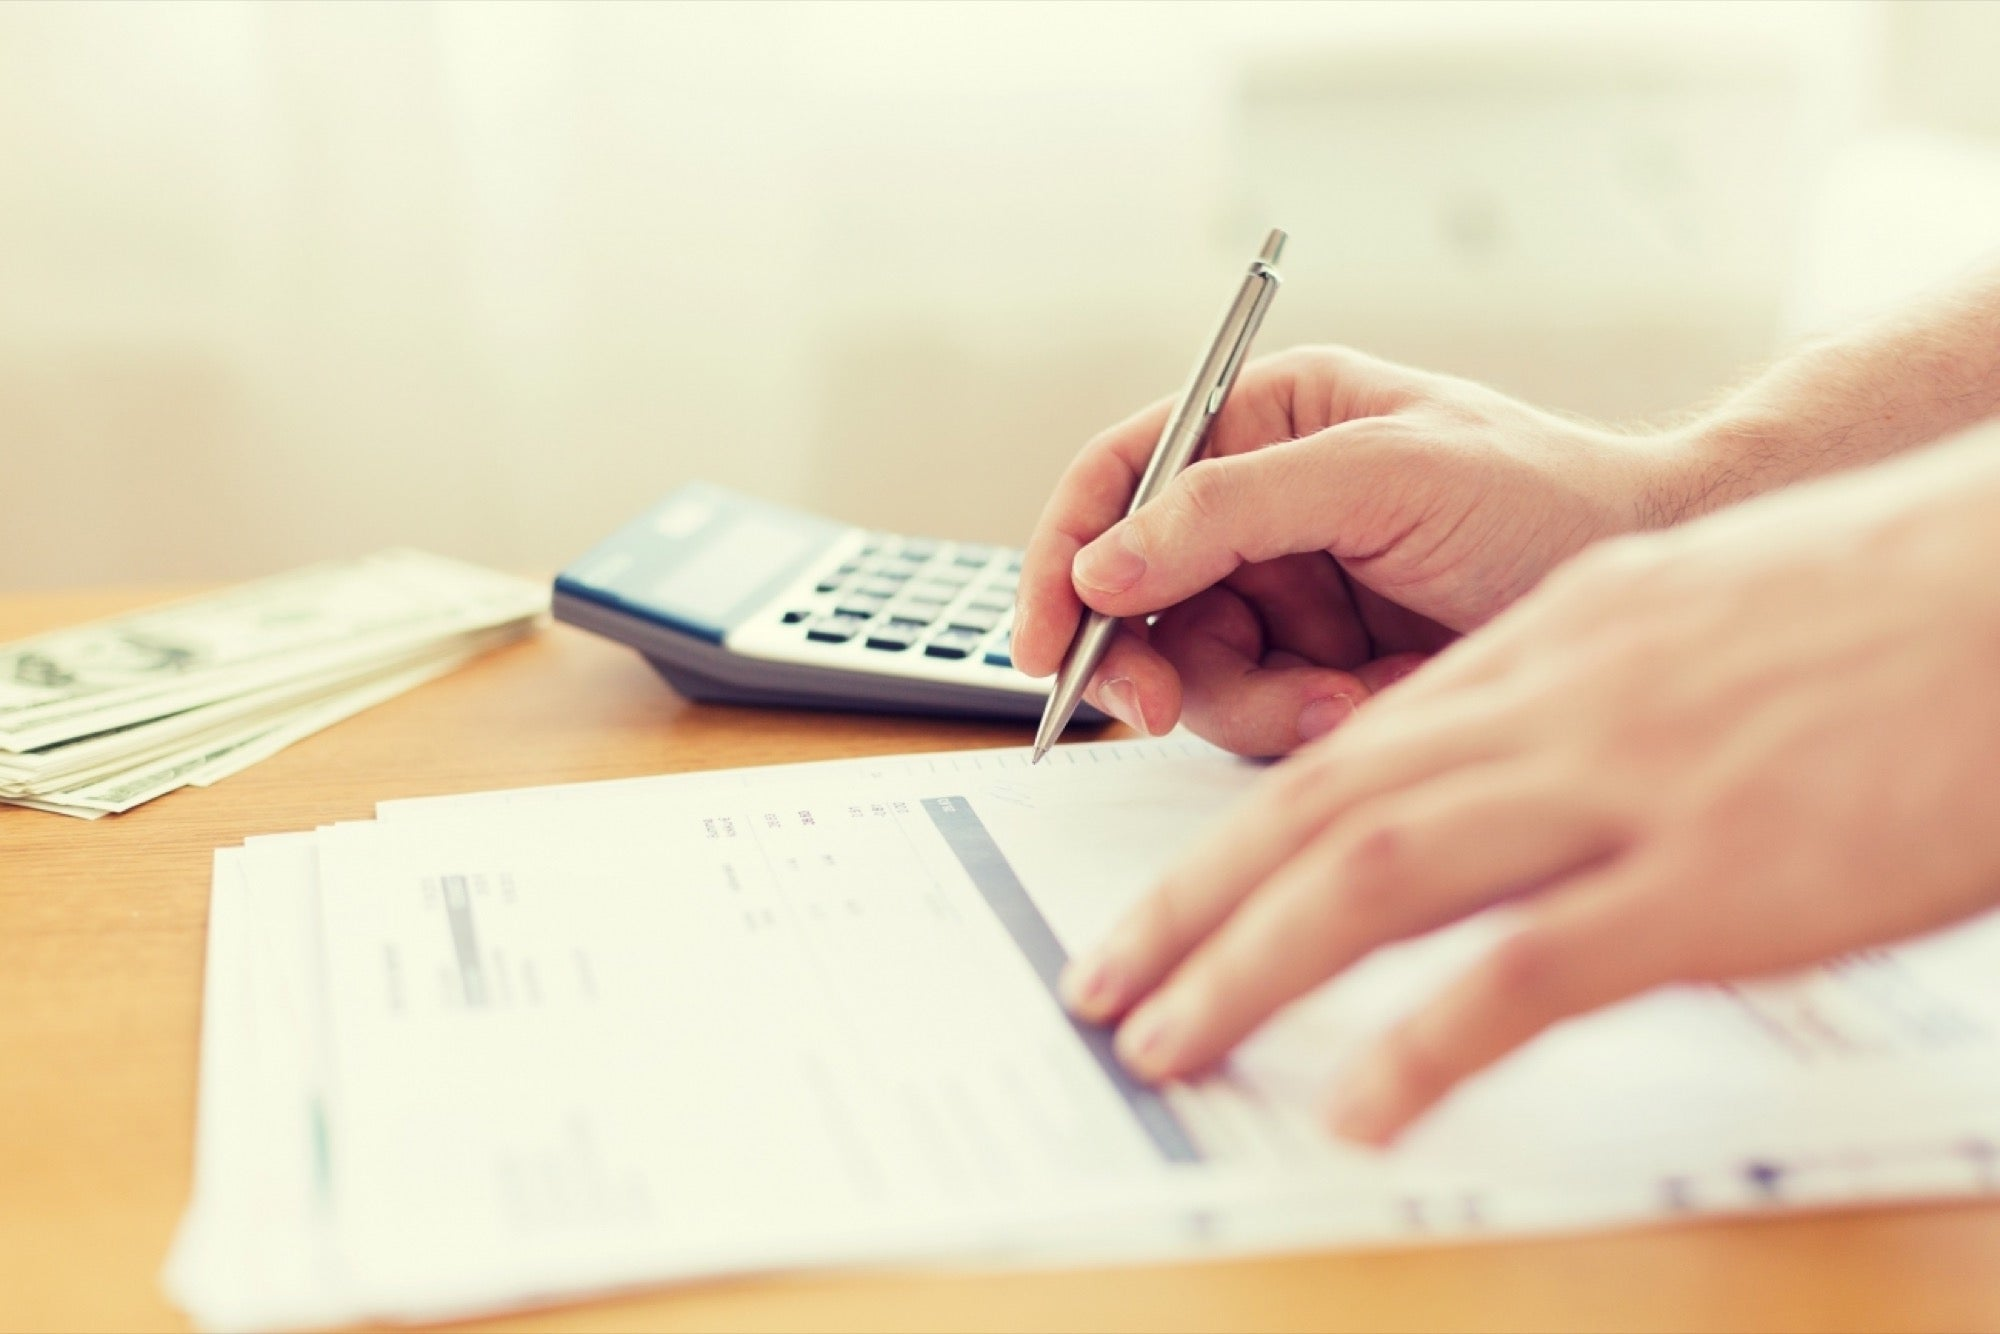 Accounting writing websites definition of a small business plan